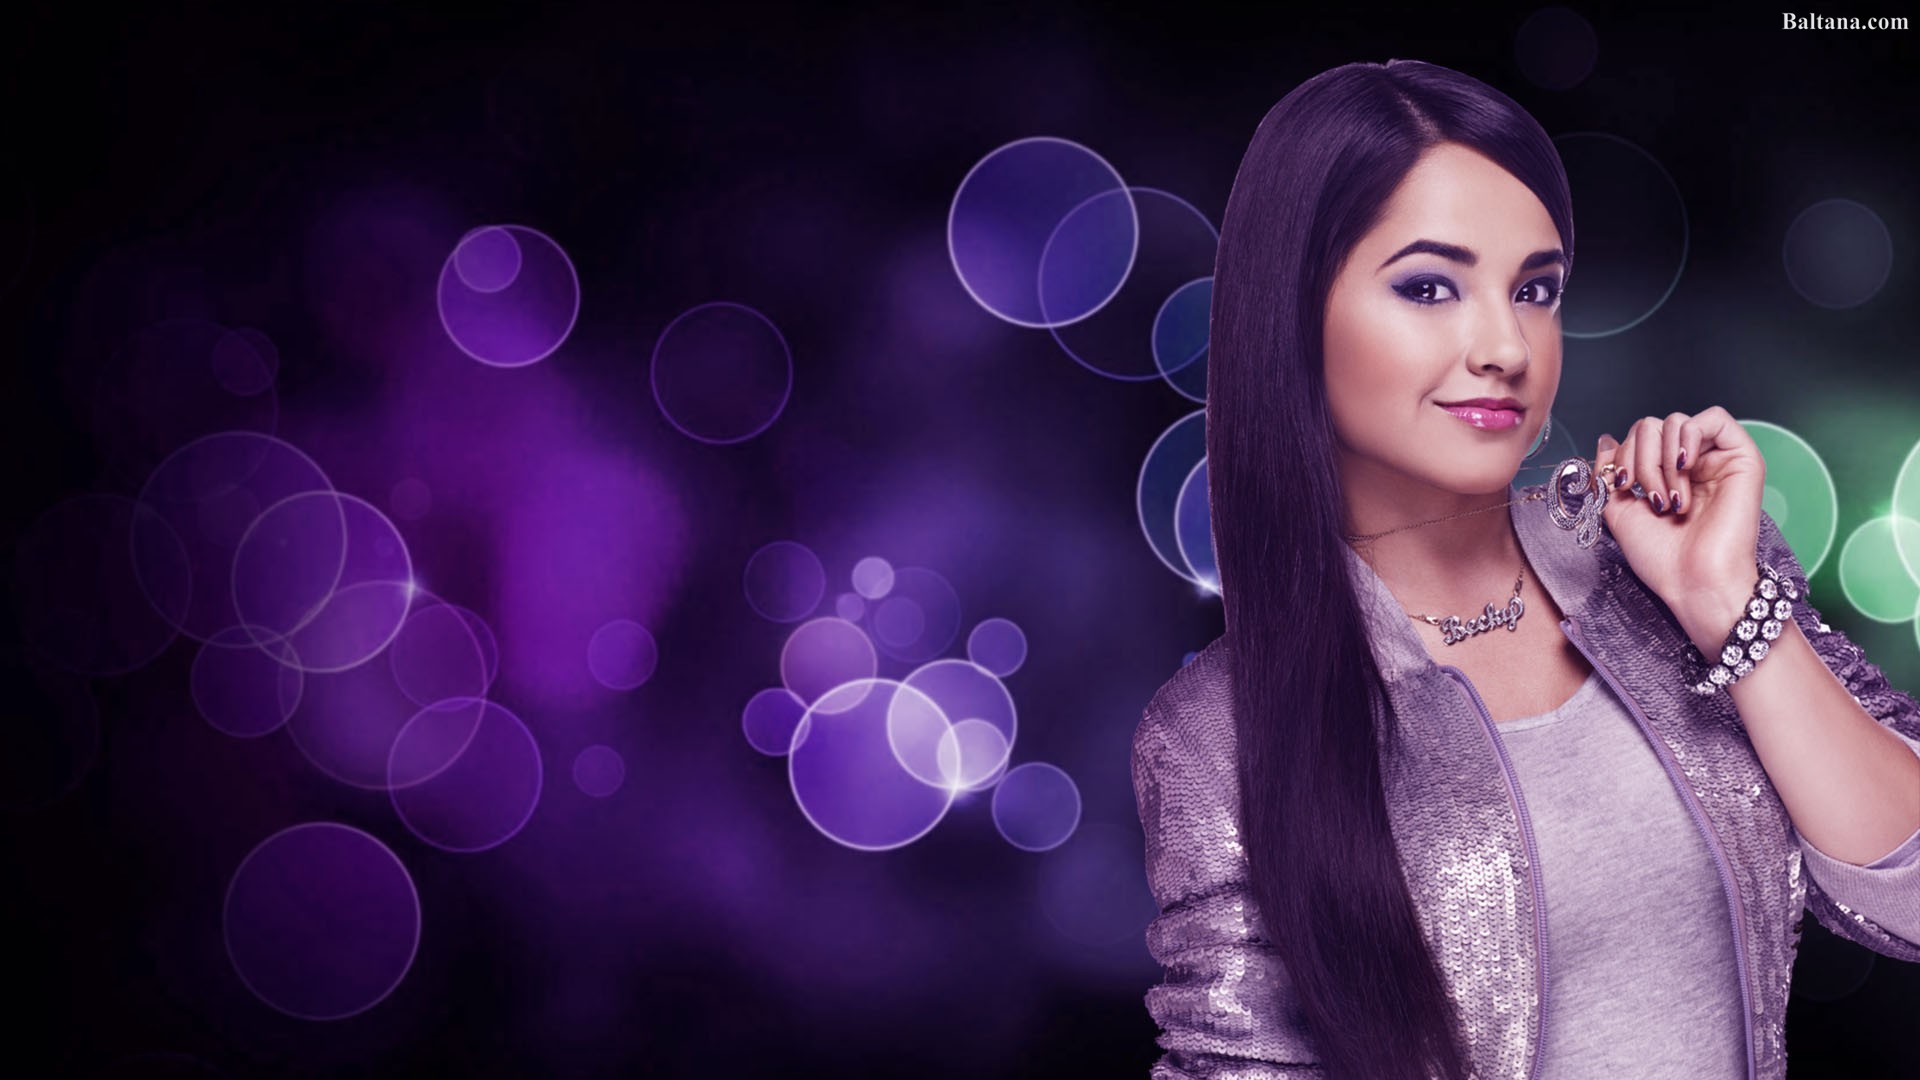 Res: 1920x1080, Becky G Background Wallpaper 29593